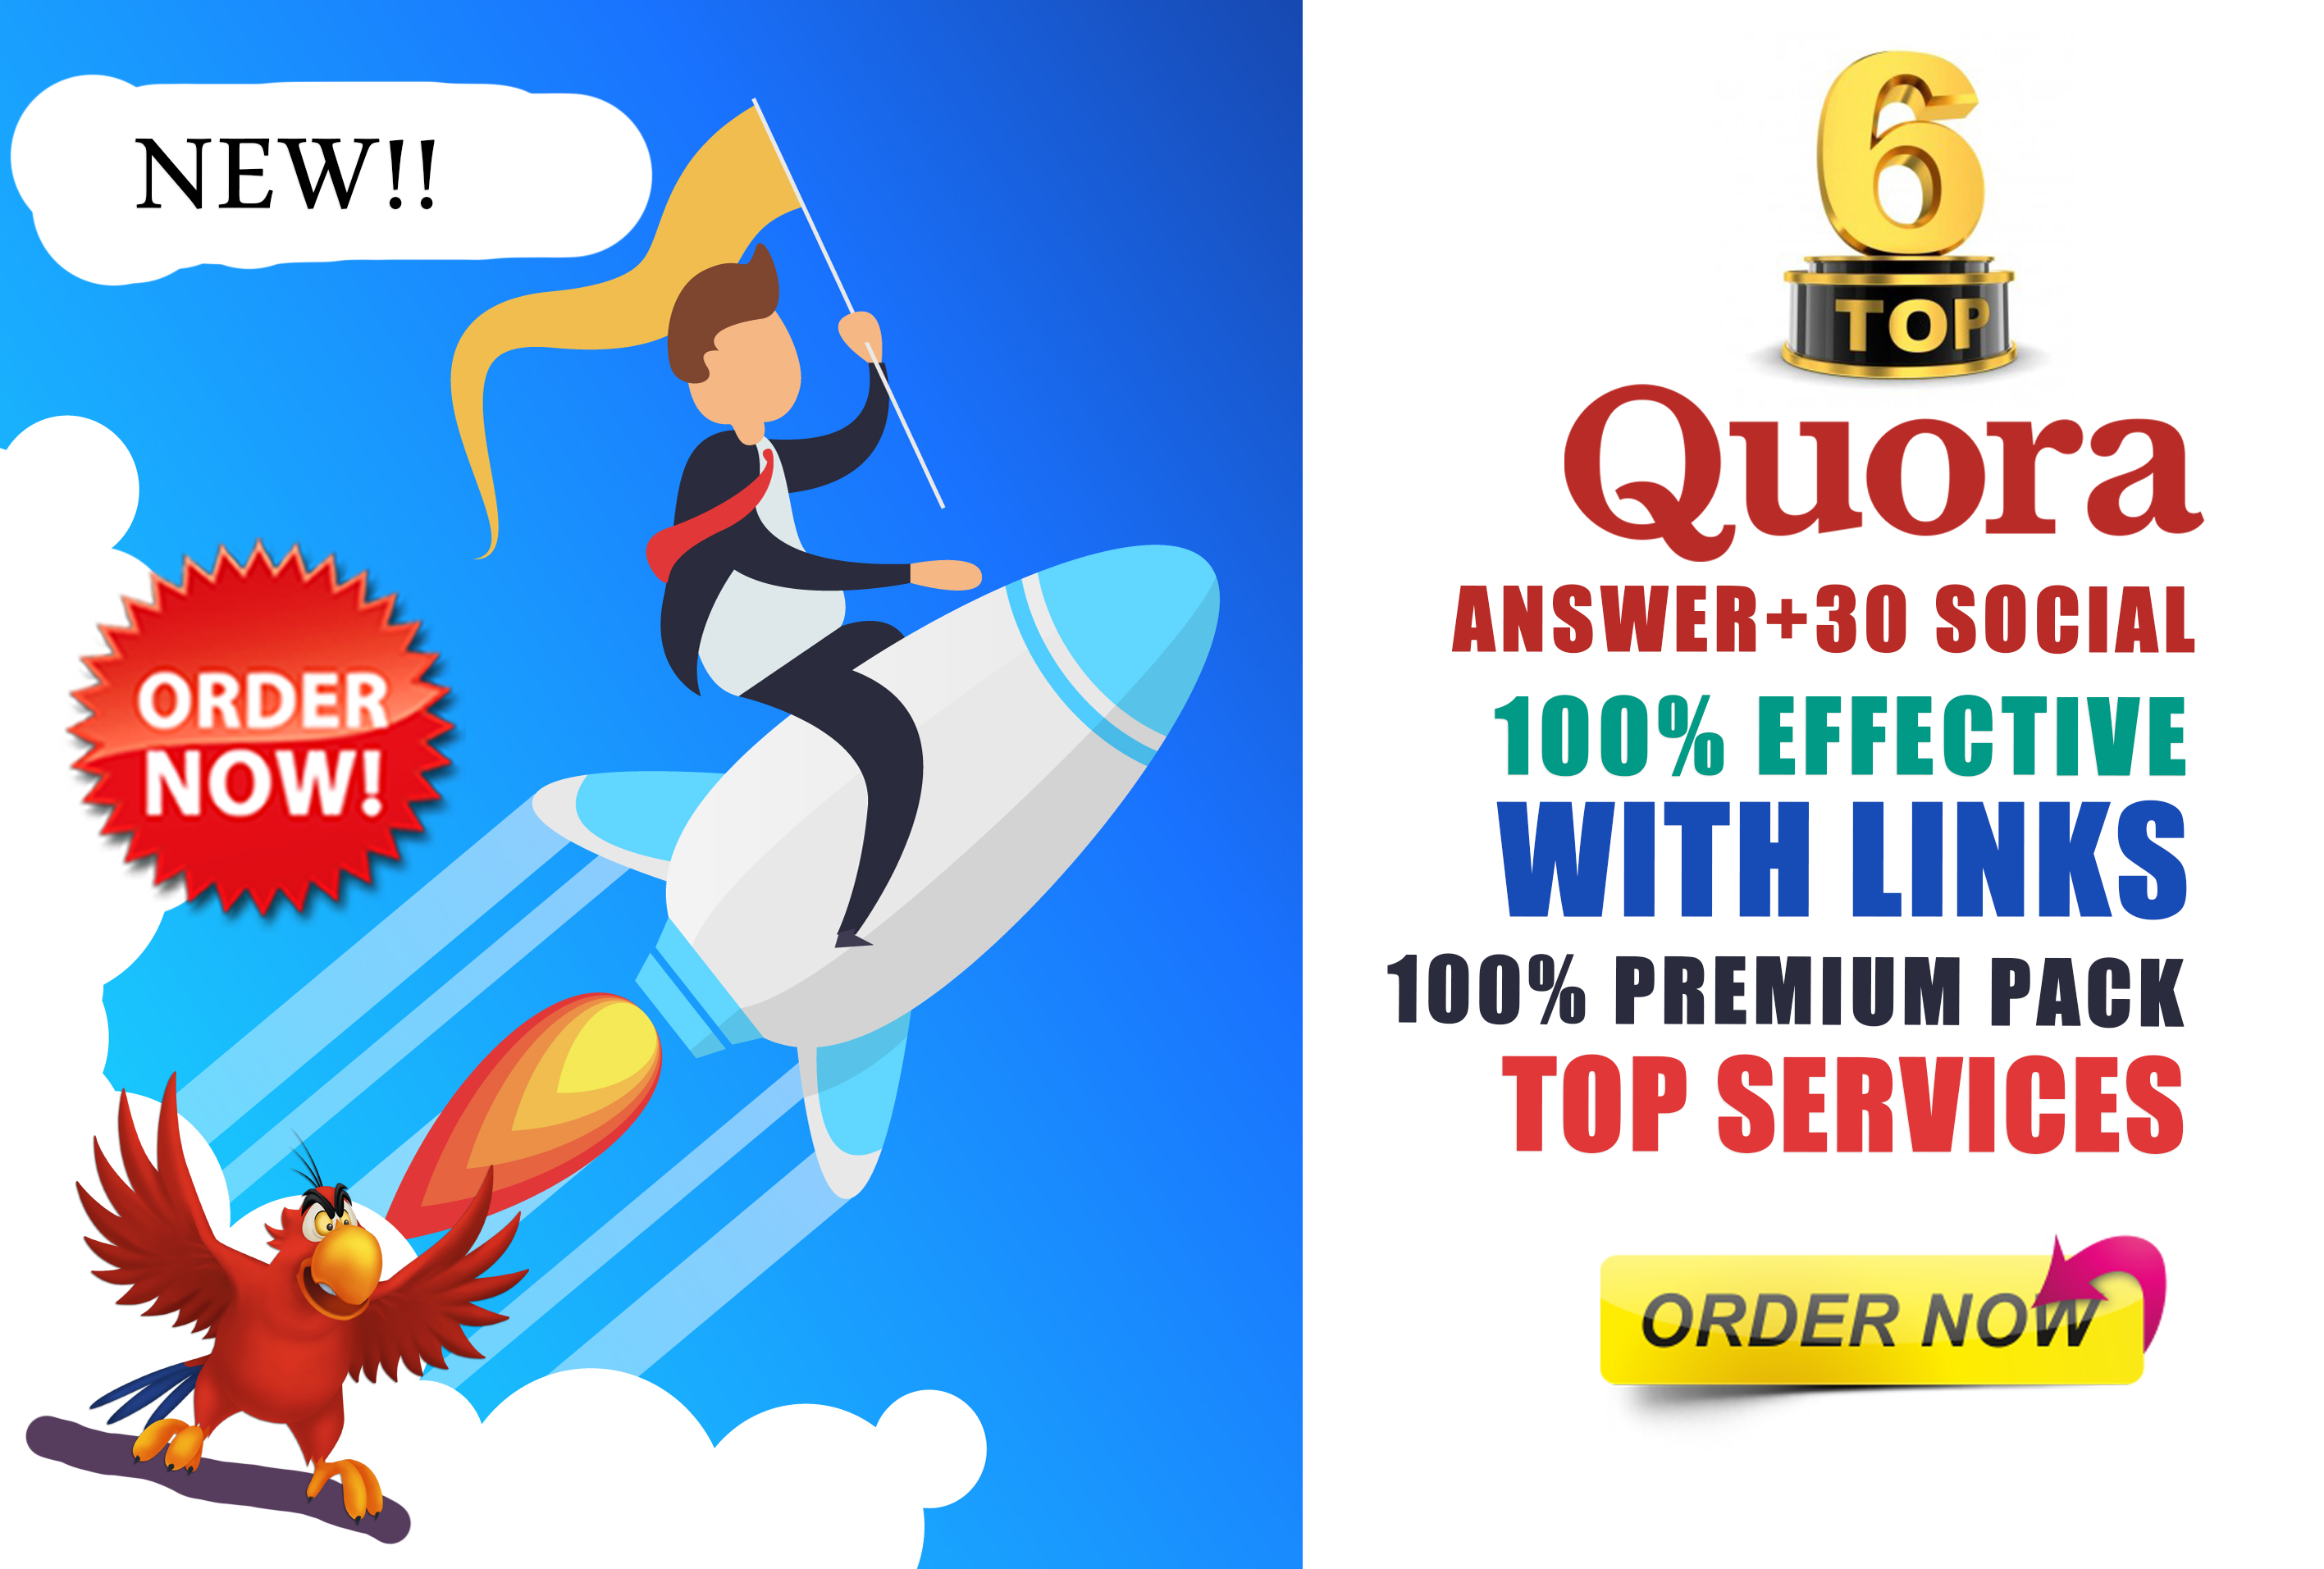 6 Quora Answers with TOP 30 Social Bookmarking SEO Backlinks